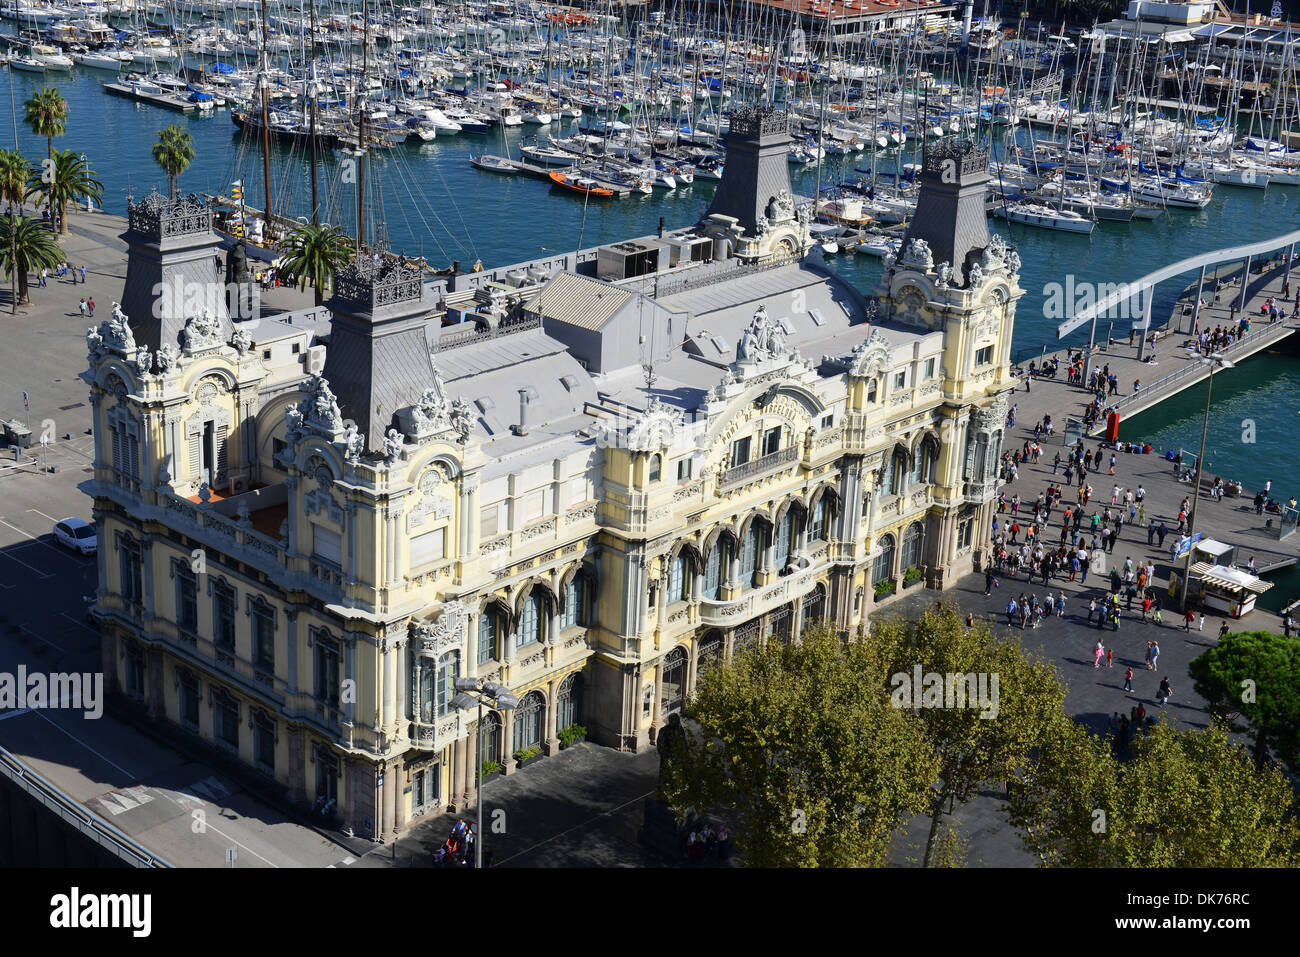 Old Port Authority building exterior, Barcelona, Spain - Stock Image